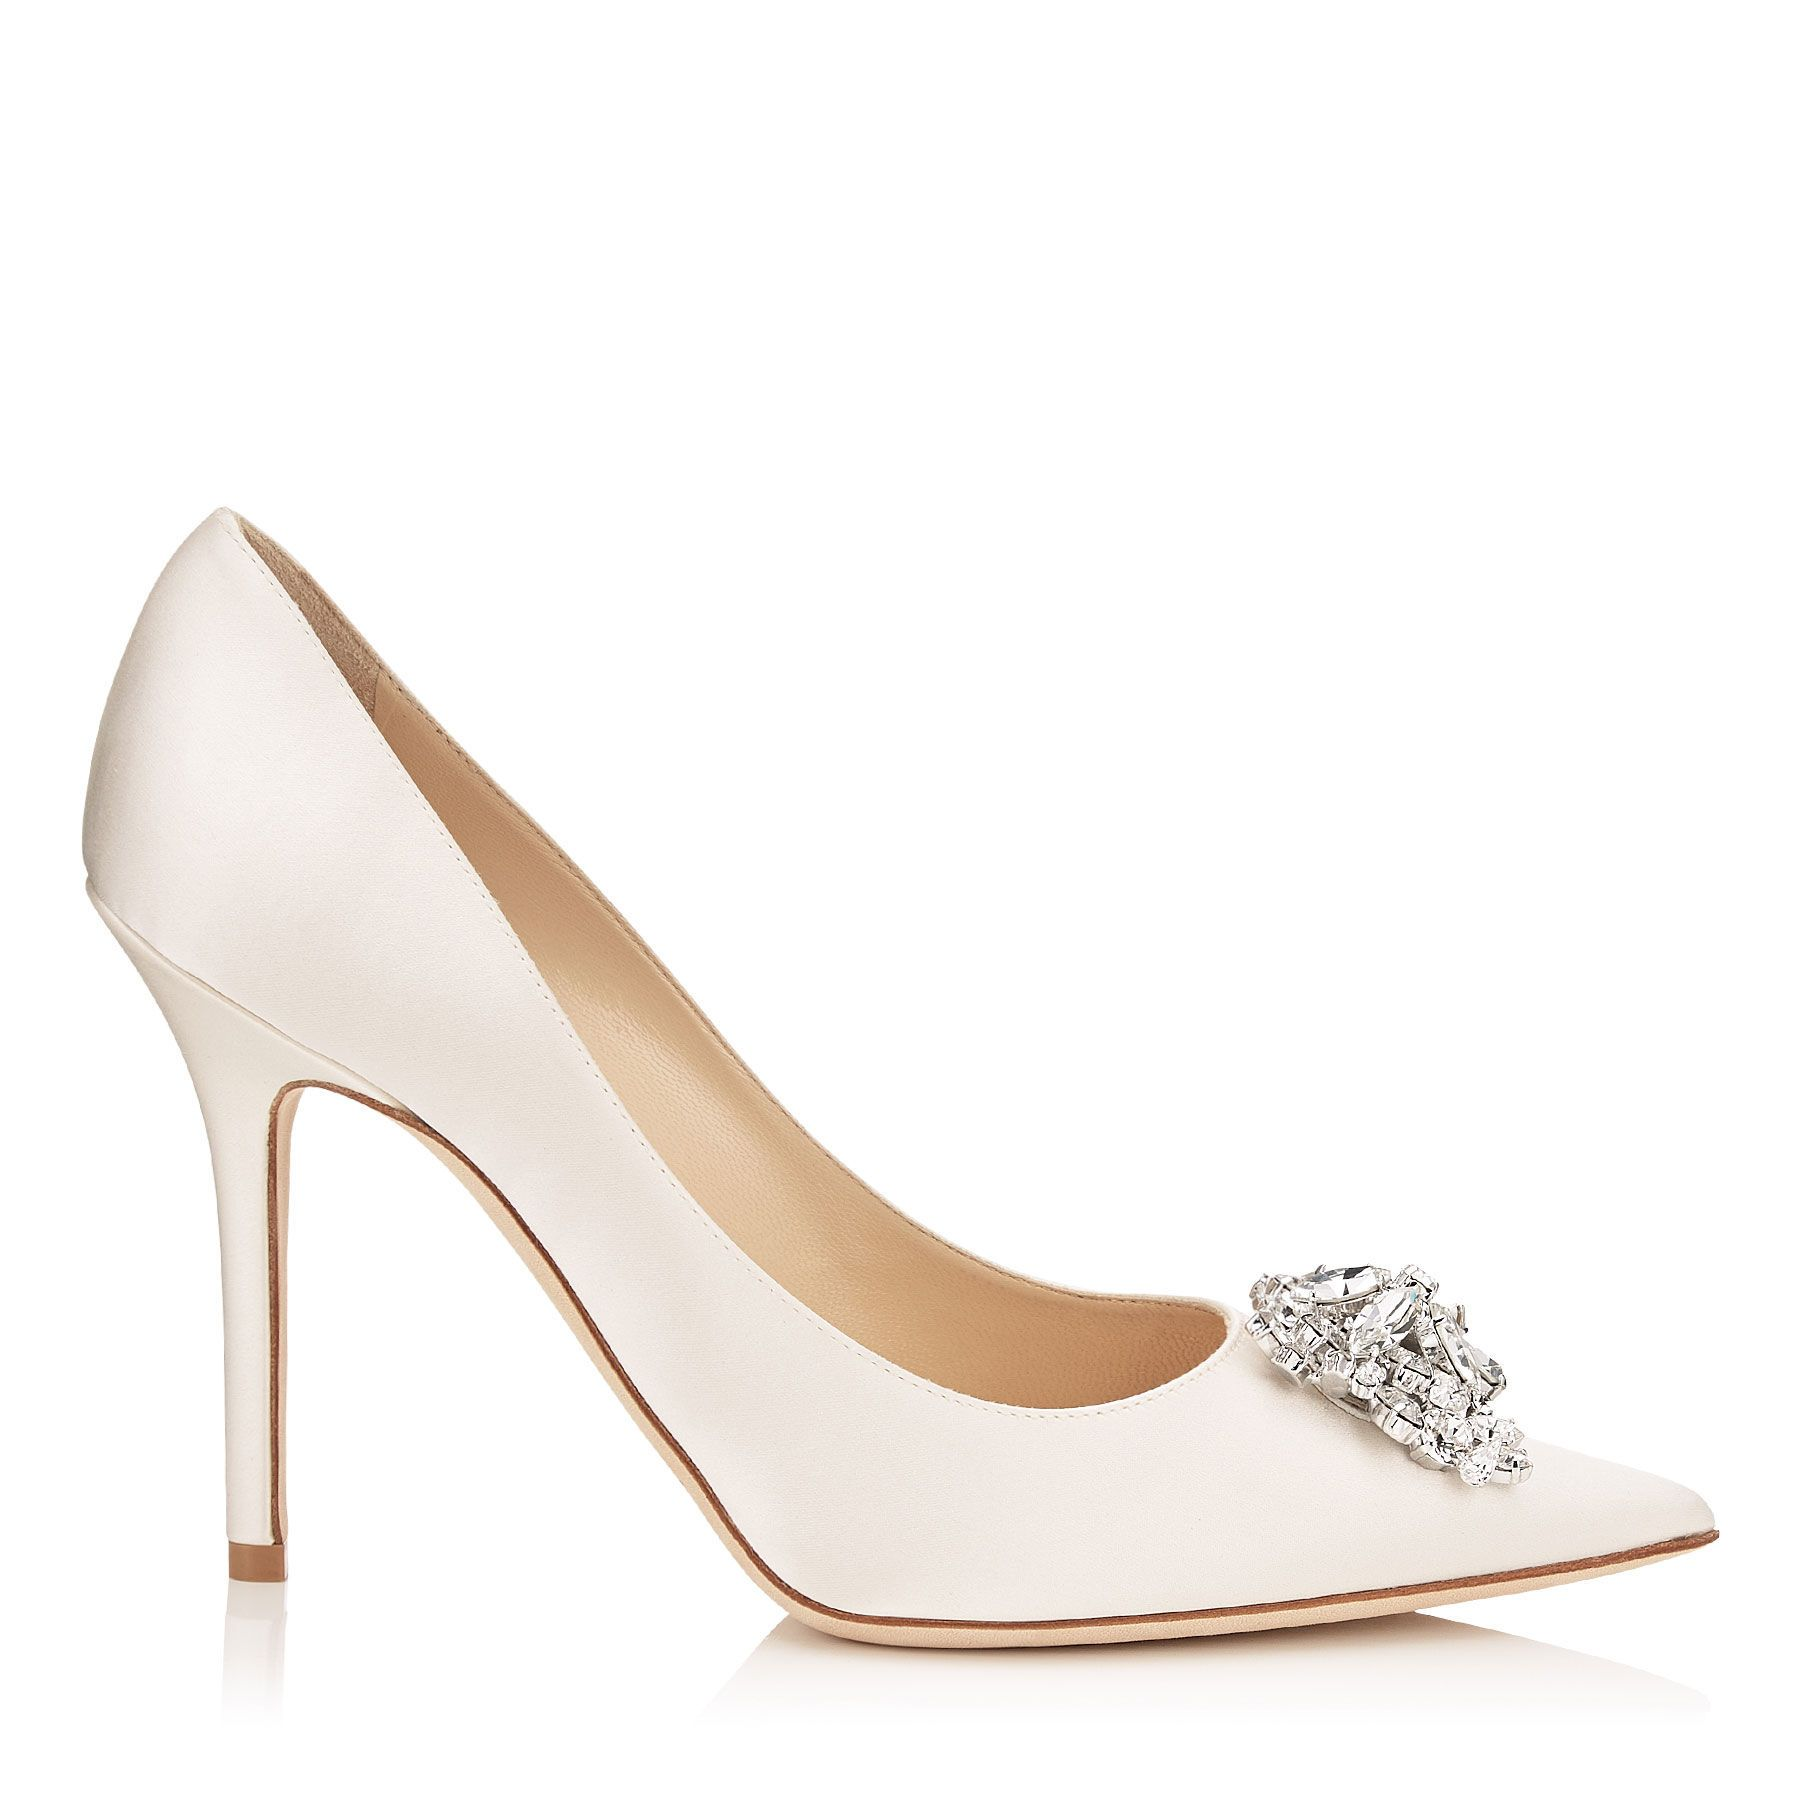 c3dce173d1f0 JIMMY CHOO ABEL Ivory Satin Pointy Toe Pumps with Crystal Detail ...